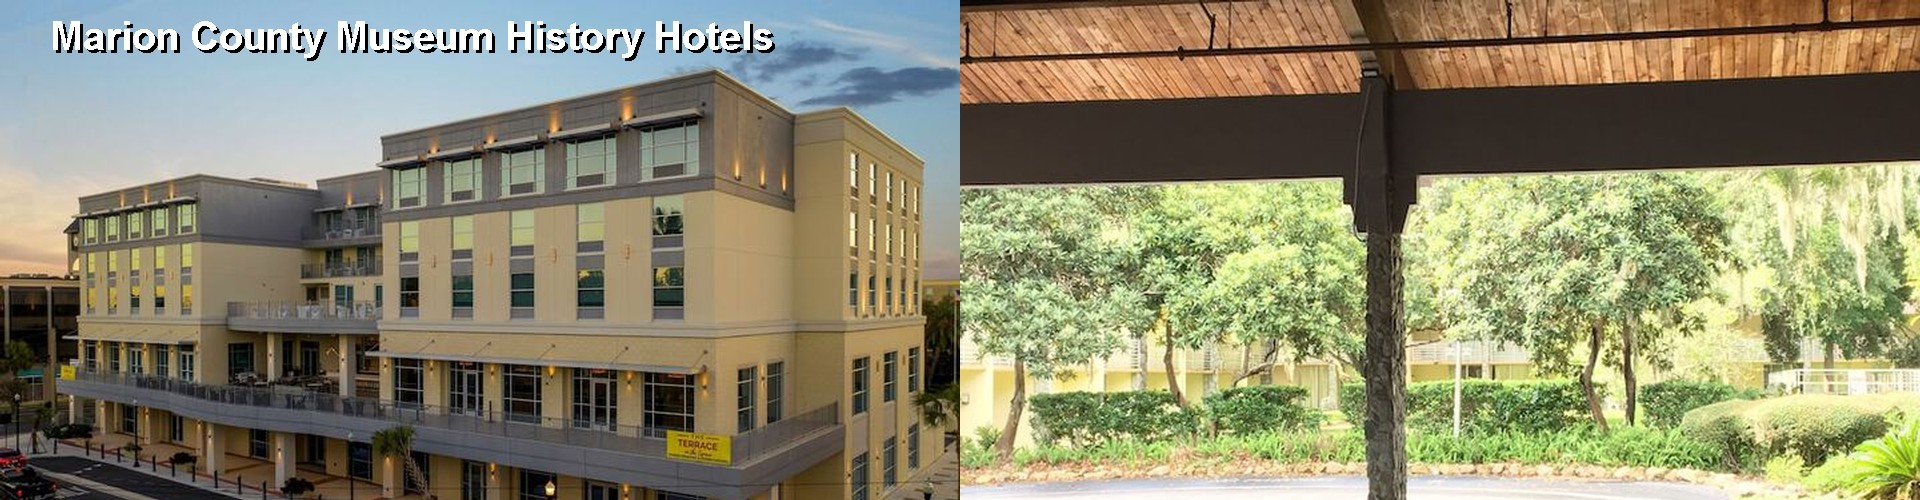 3 Best Hotels near Marion County Museum History